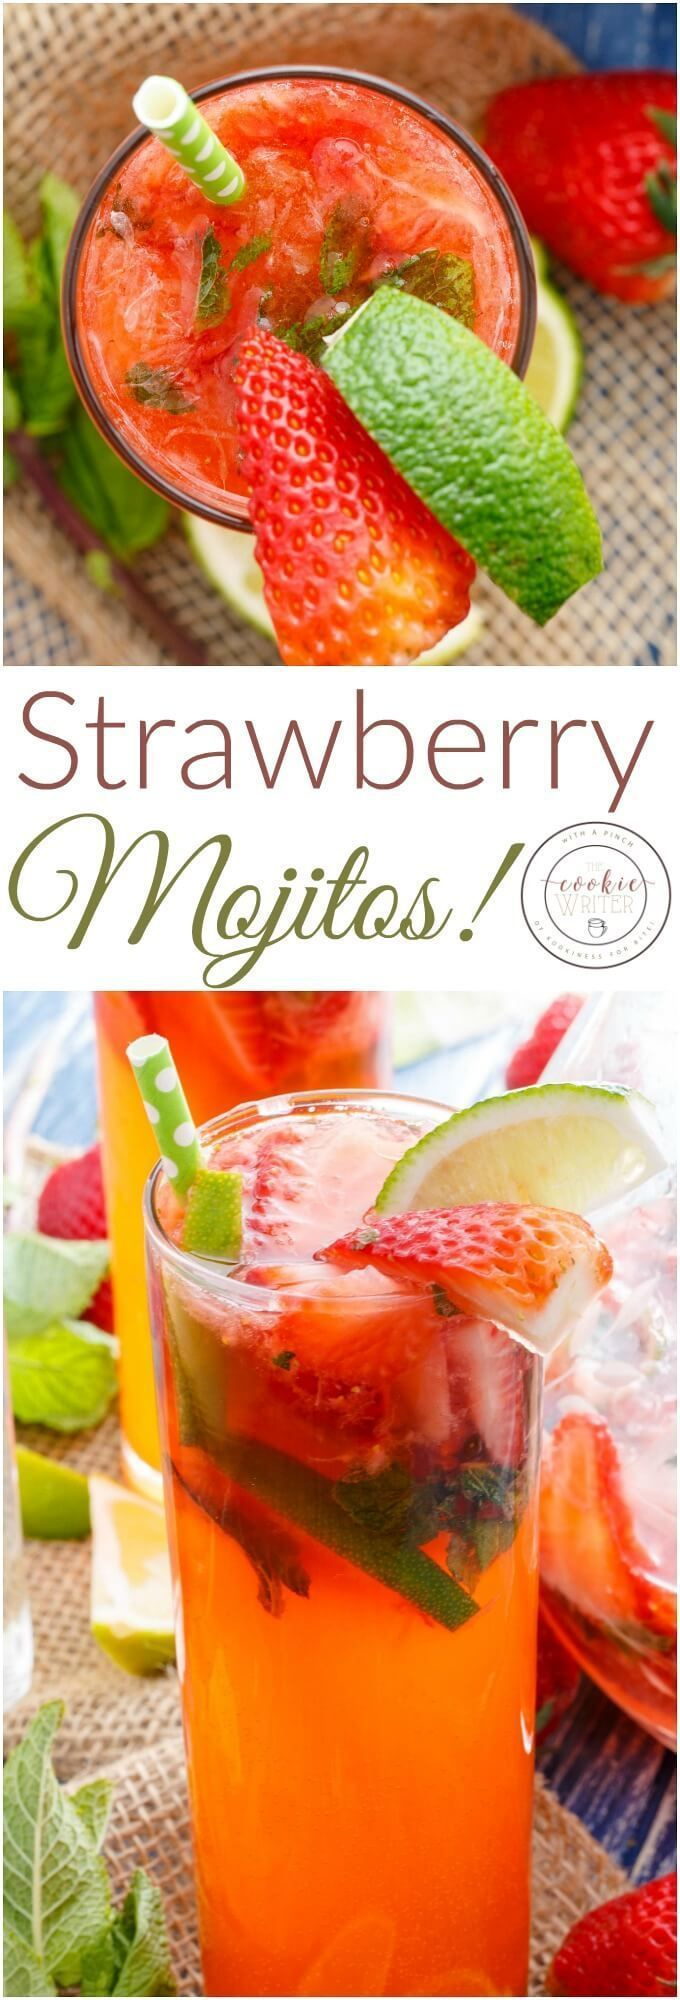 Strawberry Mojitos   http://thecookiewriter.com   @thecookiewriter   #mojitos    Whether you go the alcohol or alcohol-free route, these strawberry mojitos will surely cool you down this summer! Vegan, vegetarian, and gluten-free!